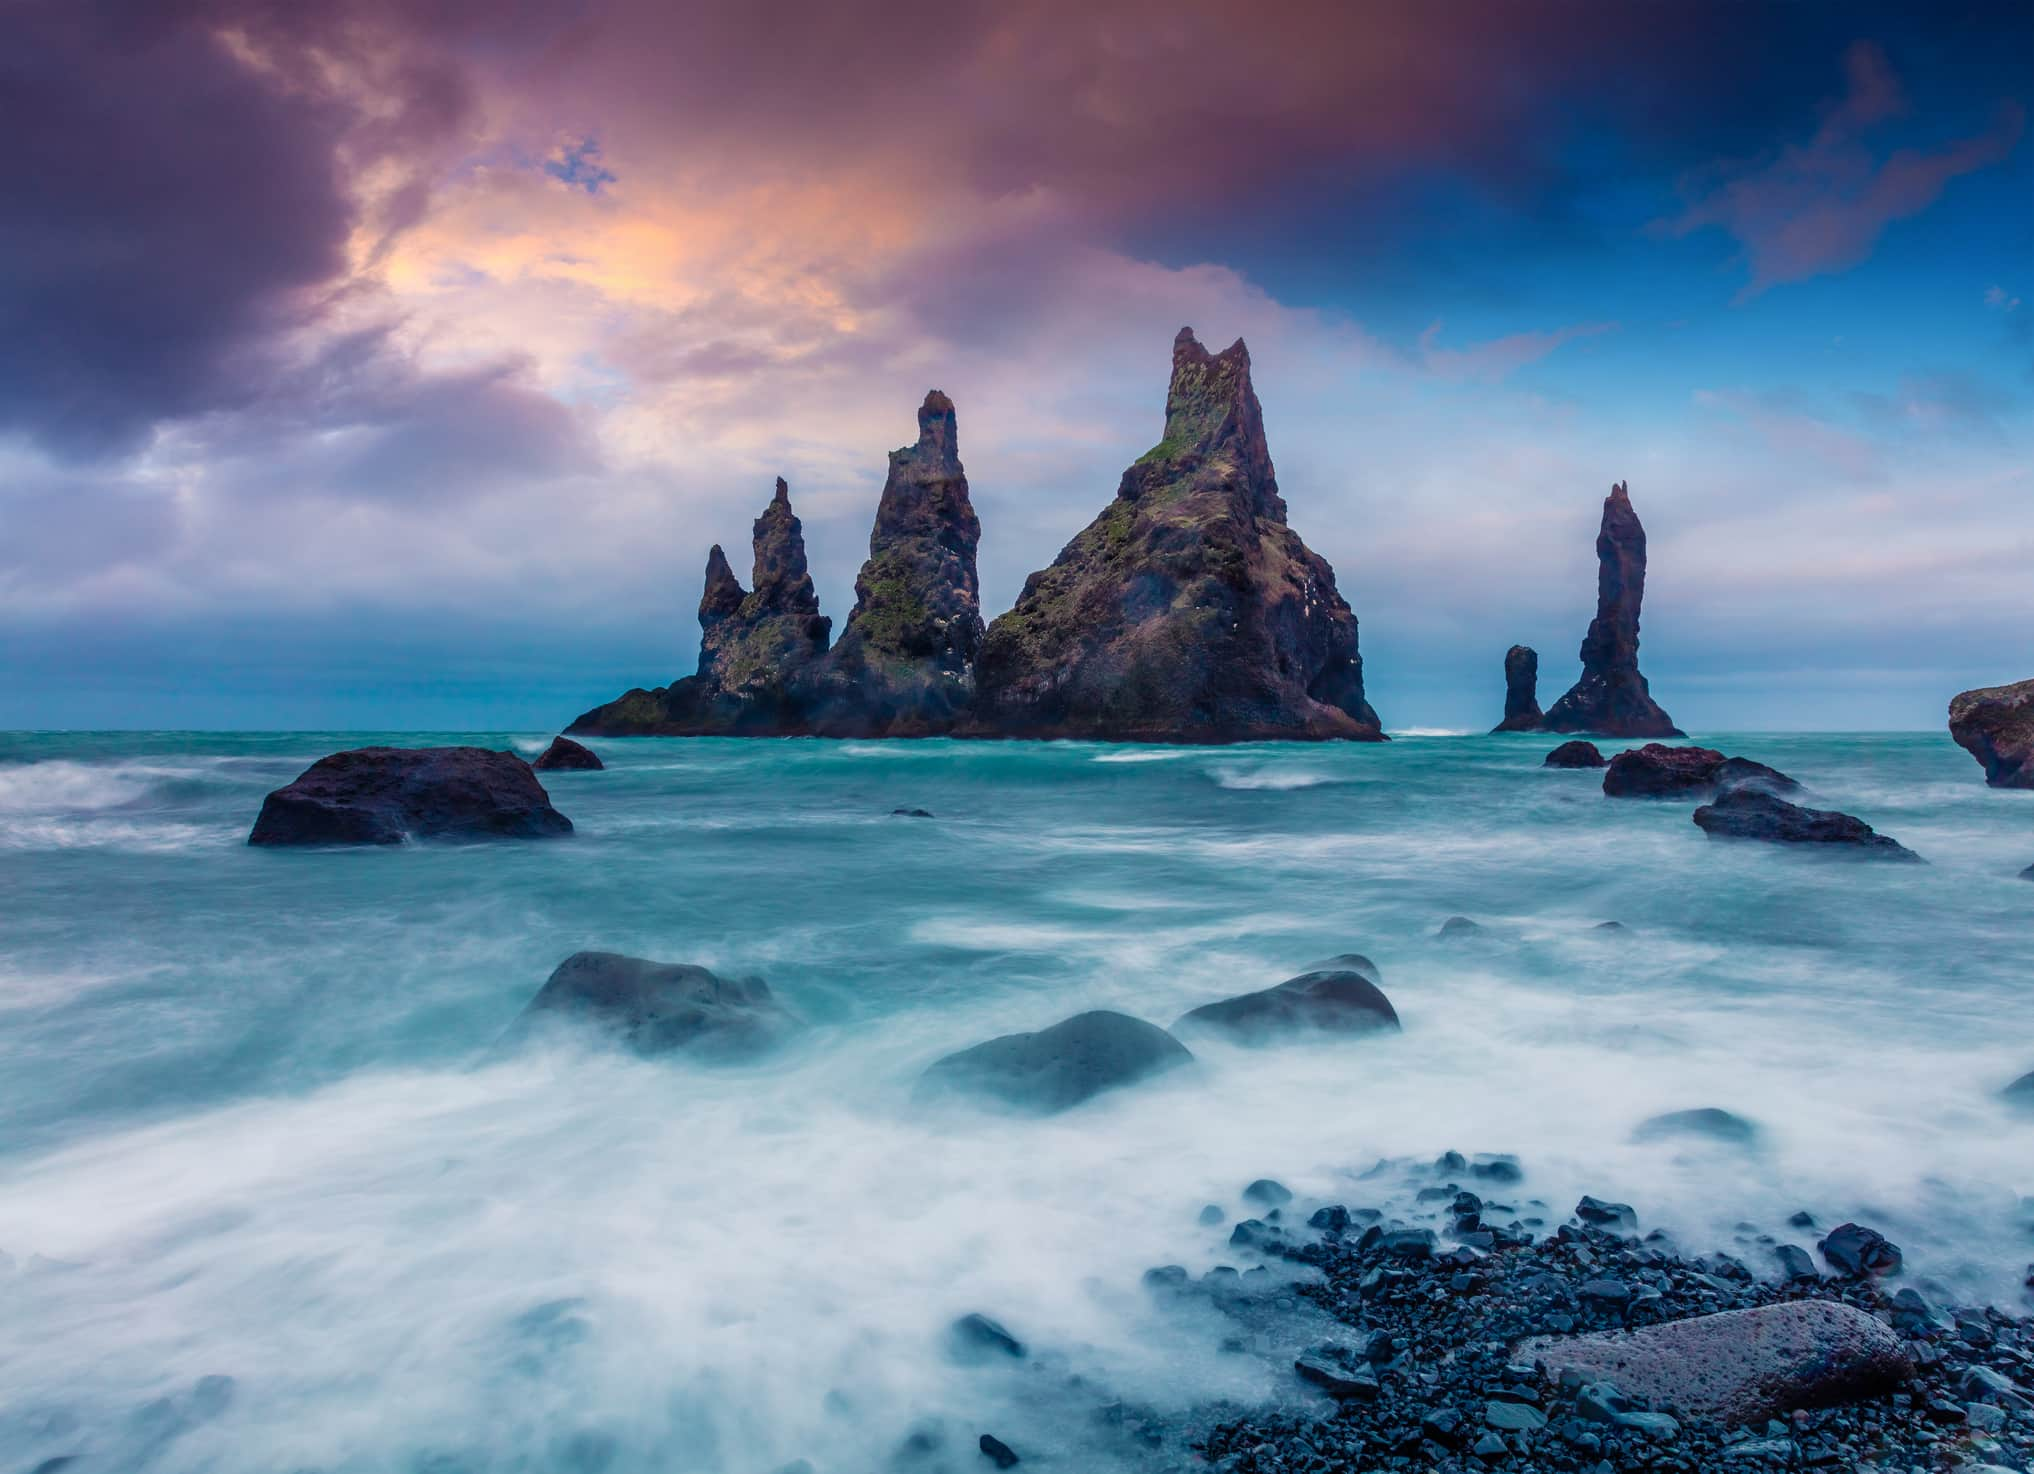 Top Tips to Help You Take Better Landscape Photos